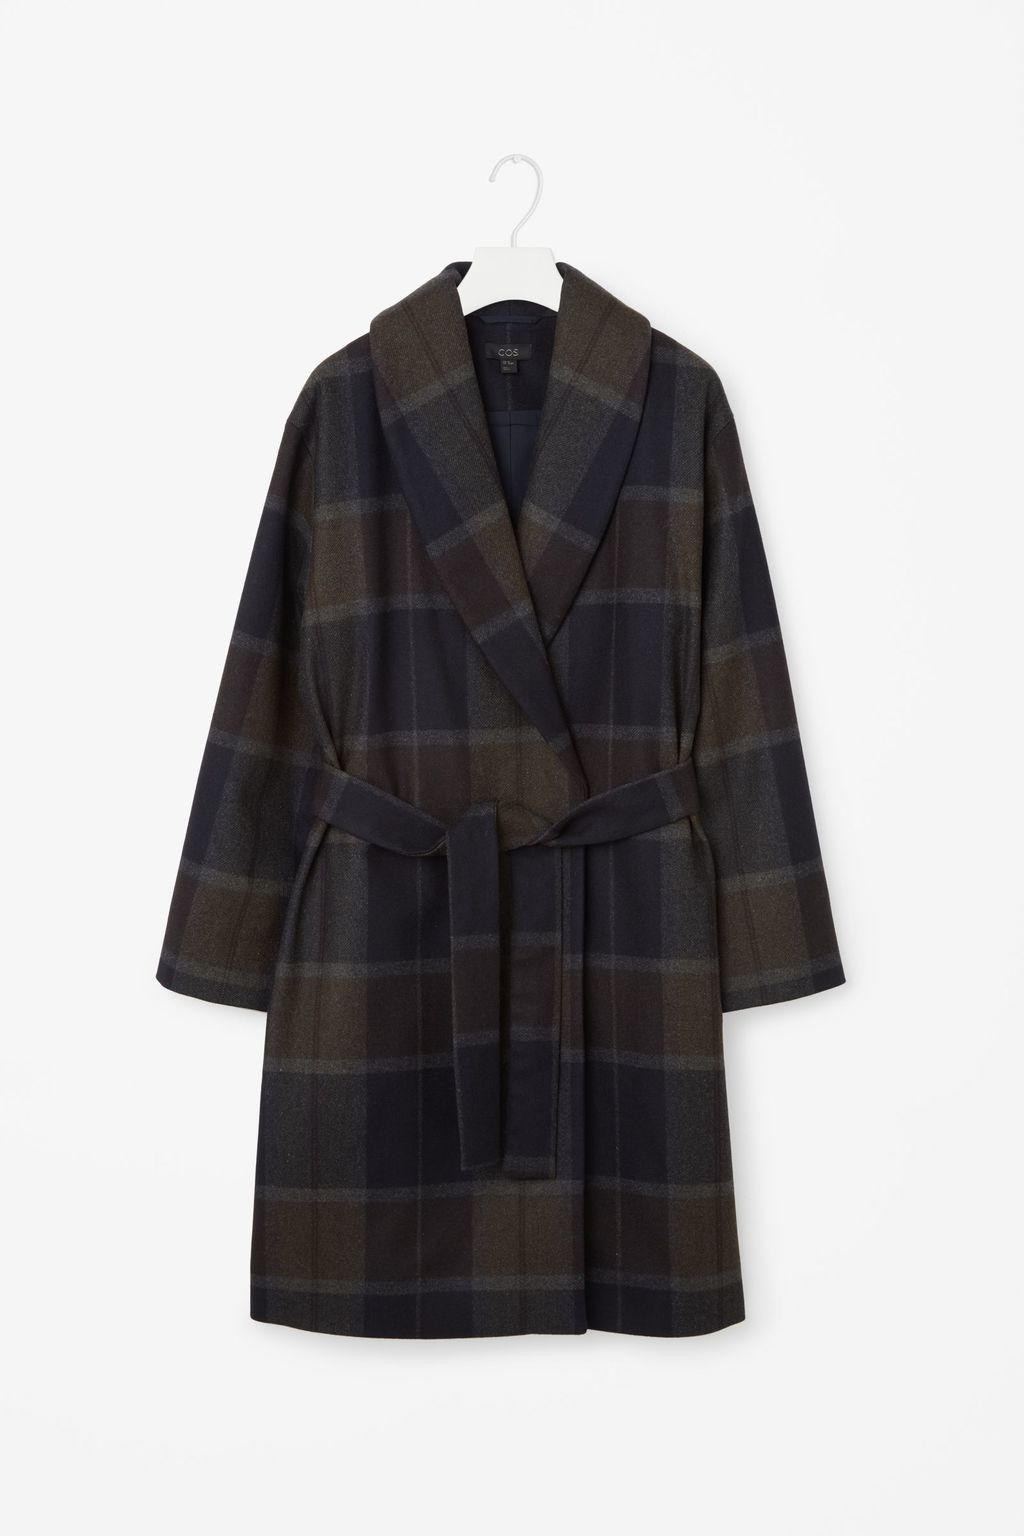 Shawl Collared Coat - pattern: checked/gingham; fit: loose; style: wrap around; collar: standard lapel/rever collar; length: mid thigh; predominant colour: navy; secondary colour: khaki; occasions: casual; fibres: wool - mix; waist detail: belted waist/tie at waist/drawstring; sleeve length: long sleeve; sleeve style: standard; collar break: medium; pattern type: fabric; texture group: woven bulky/heavy; multicoloured: multicoloured; season: a/w 2016; wardrobe: highlight